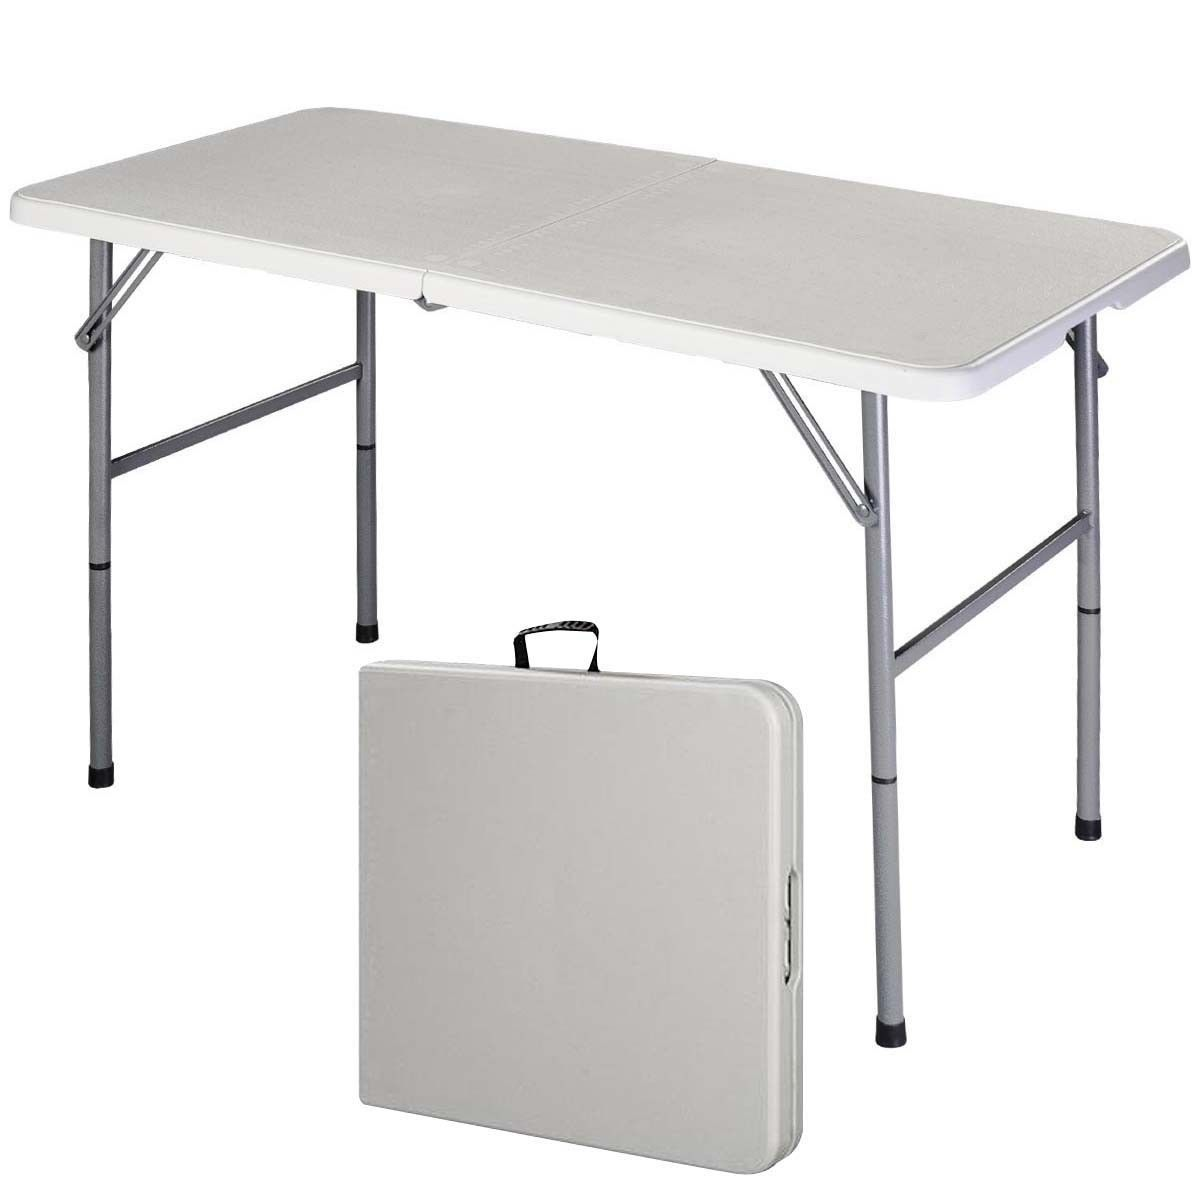 how to put up a folding table